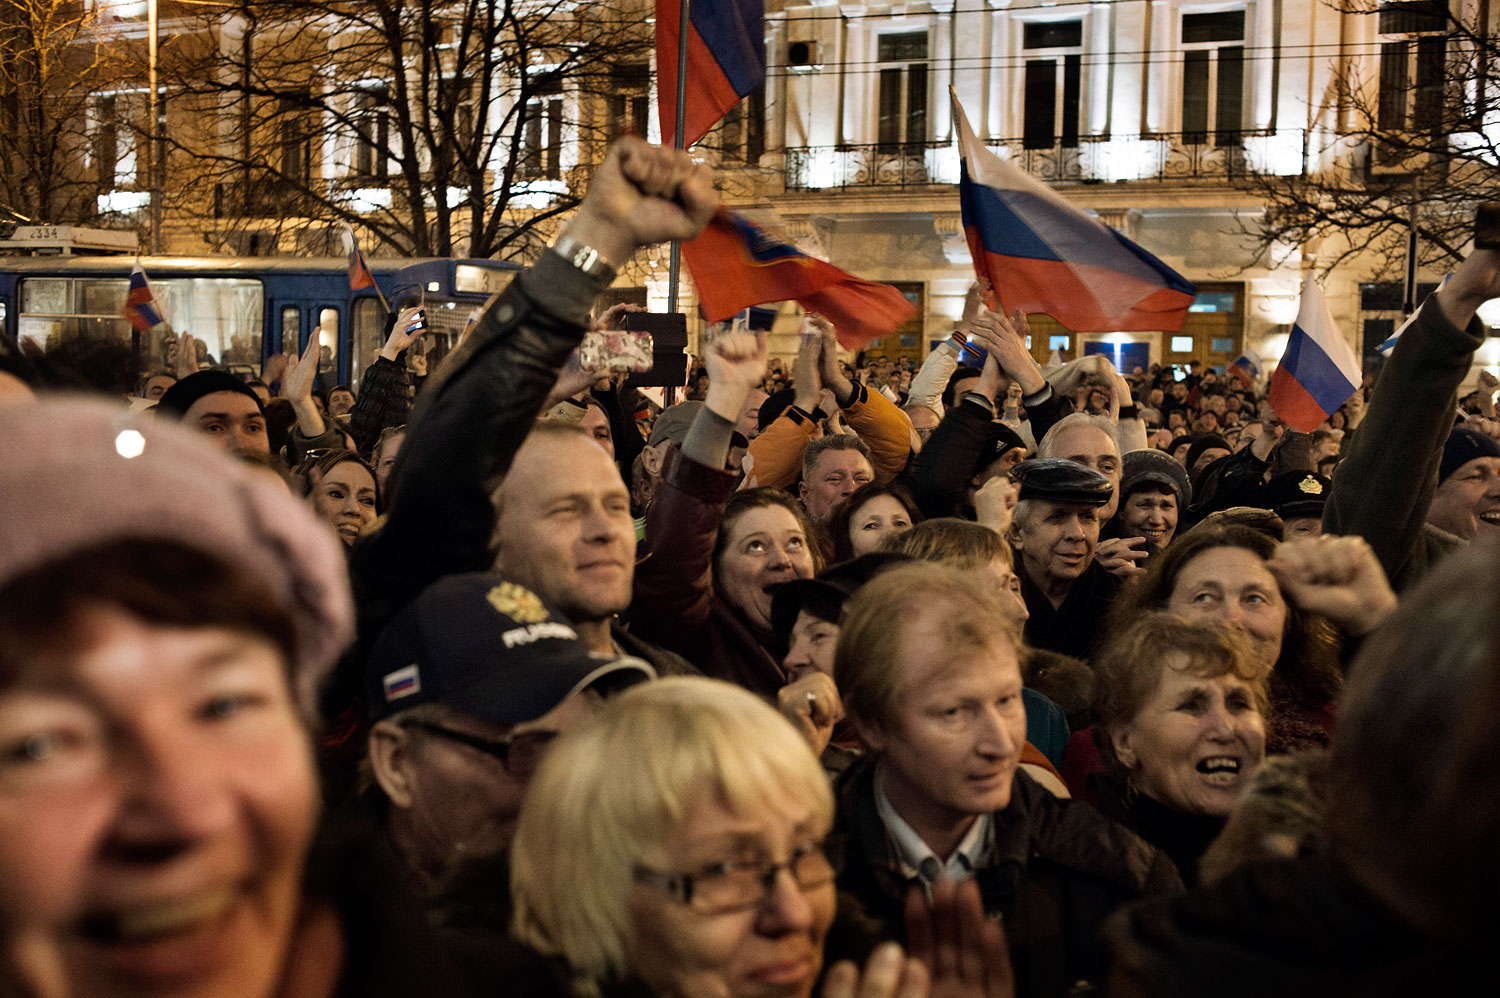 A rally of Pro-Russian supporters in Sevastopool, Ukraine, March 06, 2014.